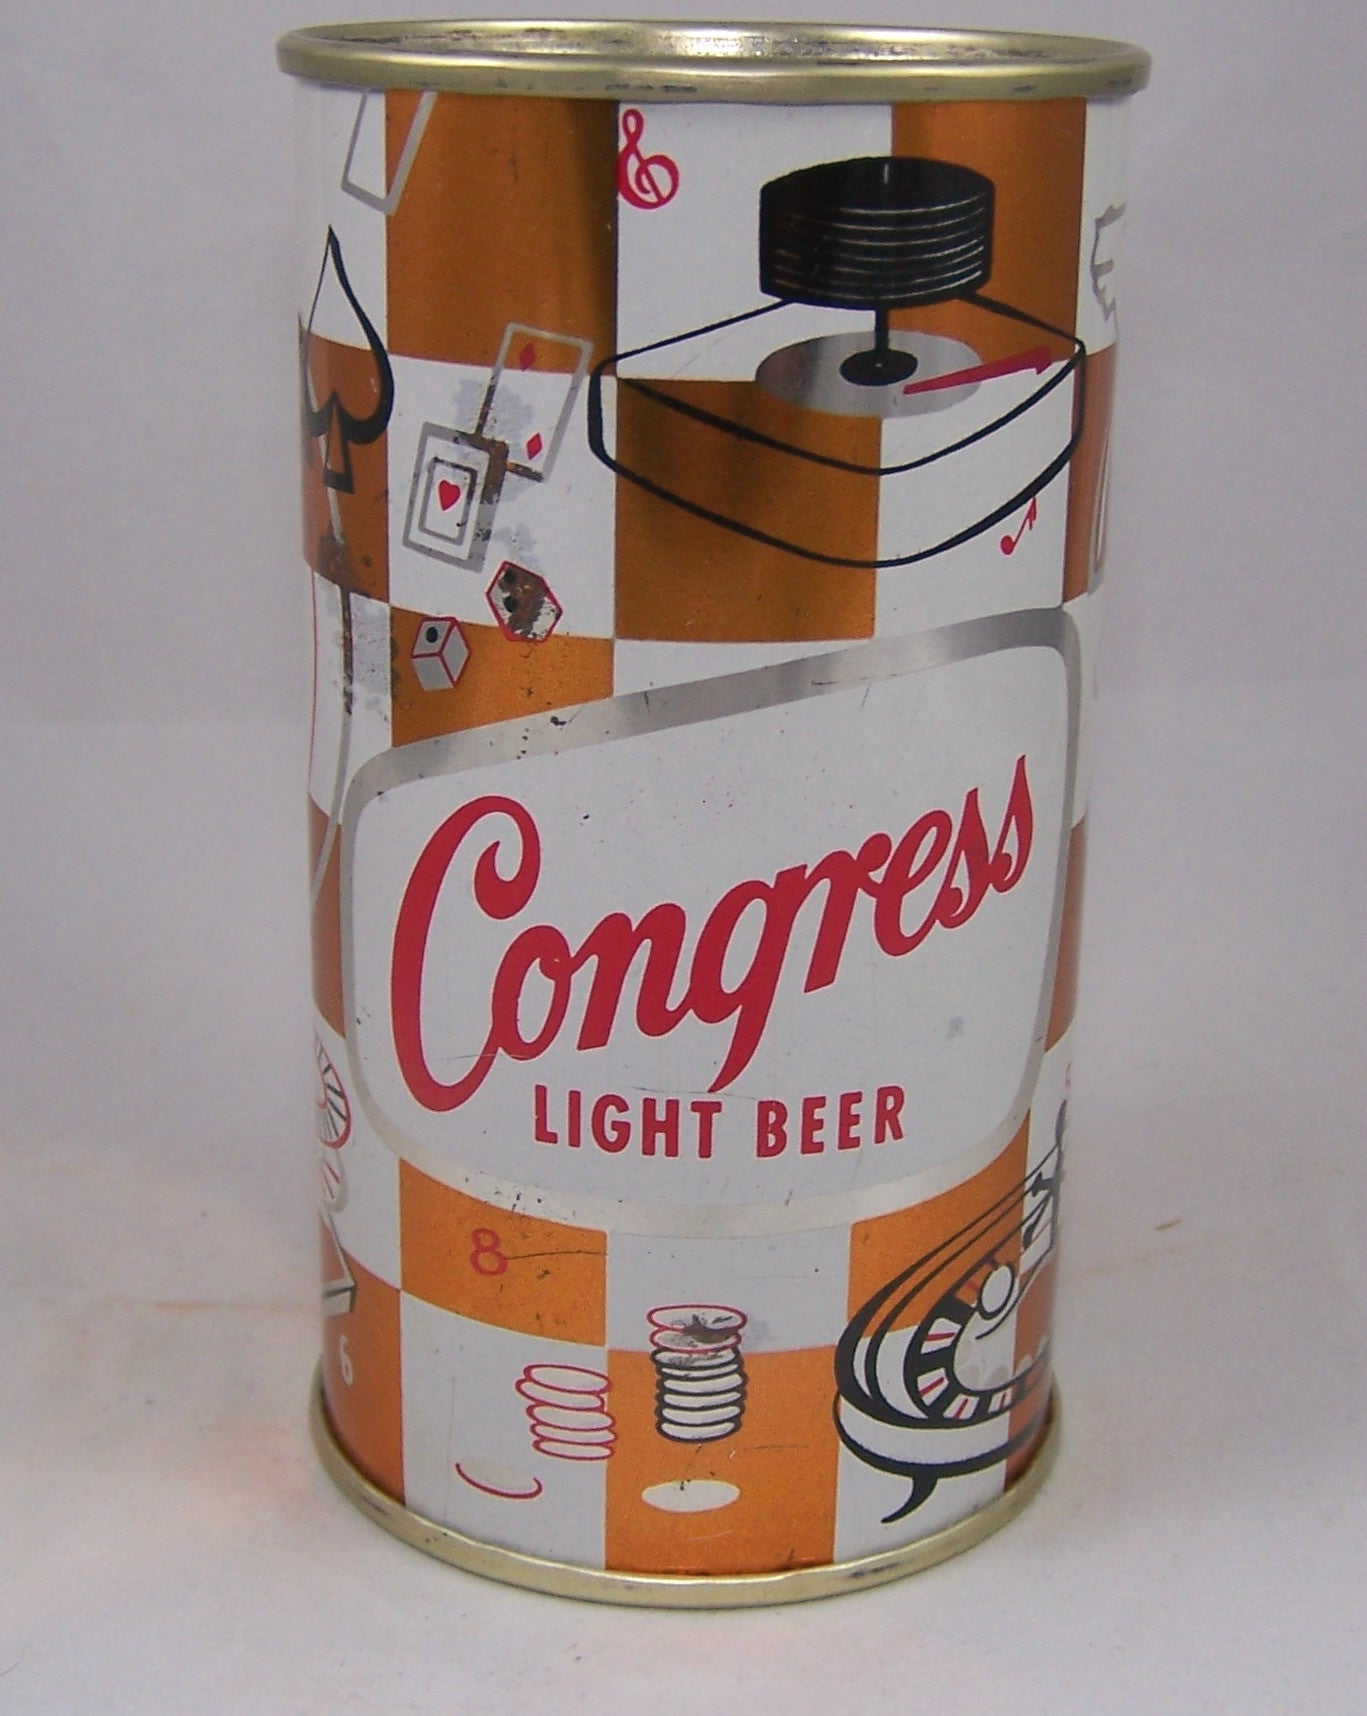 Congress Light Beer, (Indoor Games) USBC 50-29, Rolled,  Grade 1 Sold on 05/28/16